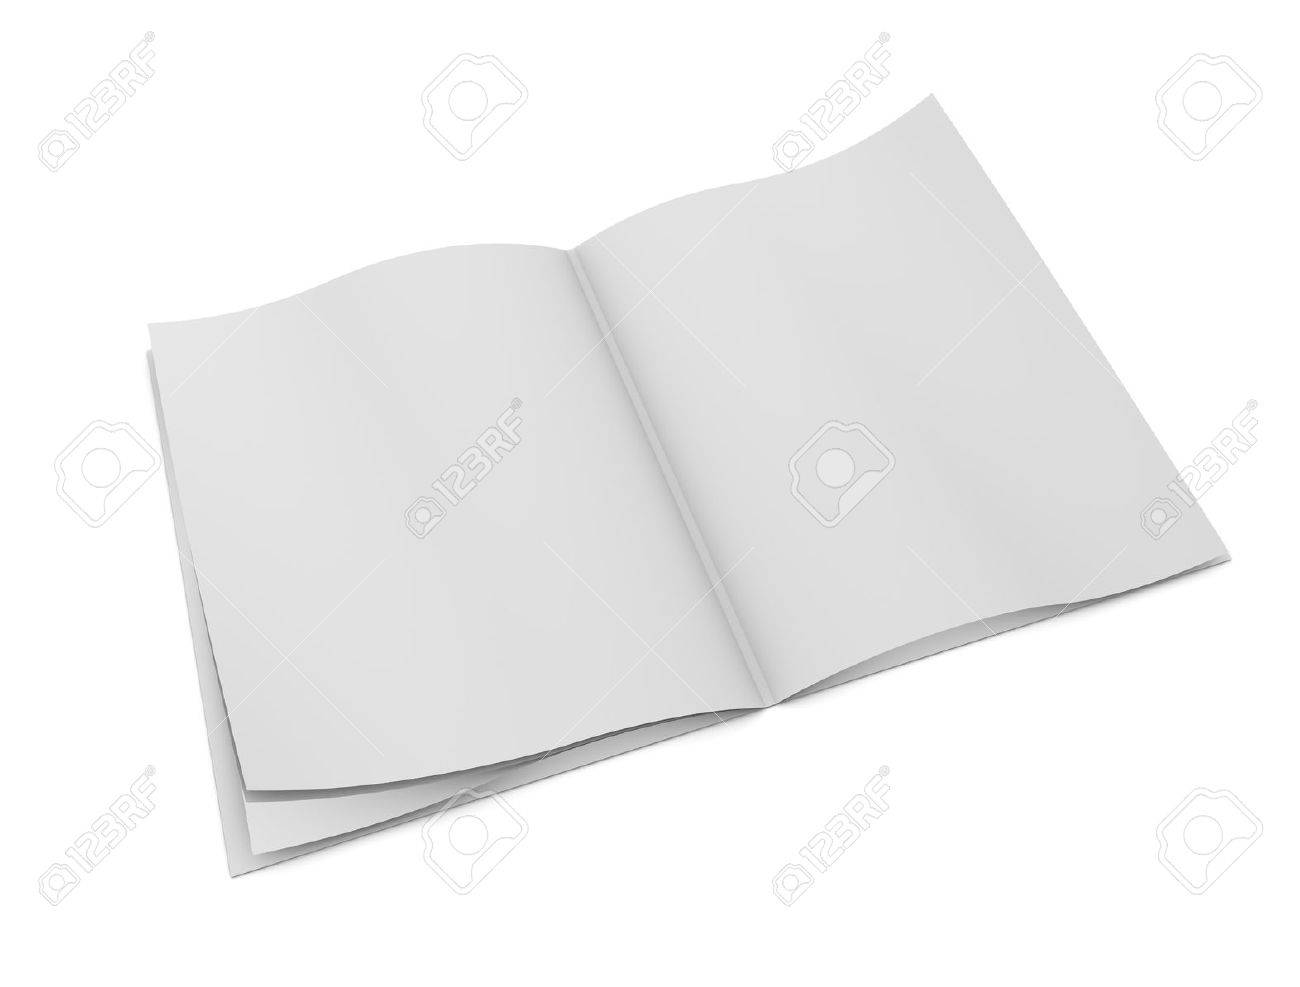 3d rendering, design element, blank book pages, isolated on white. Stock Photo - 11742590